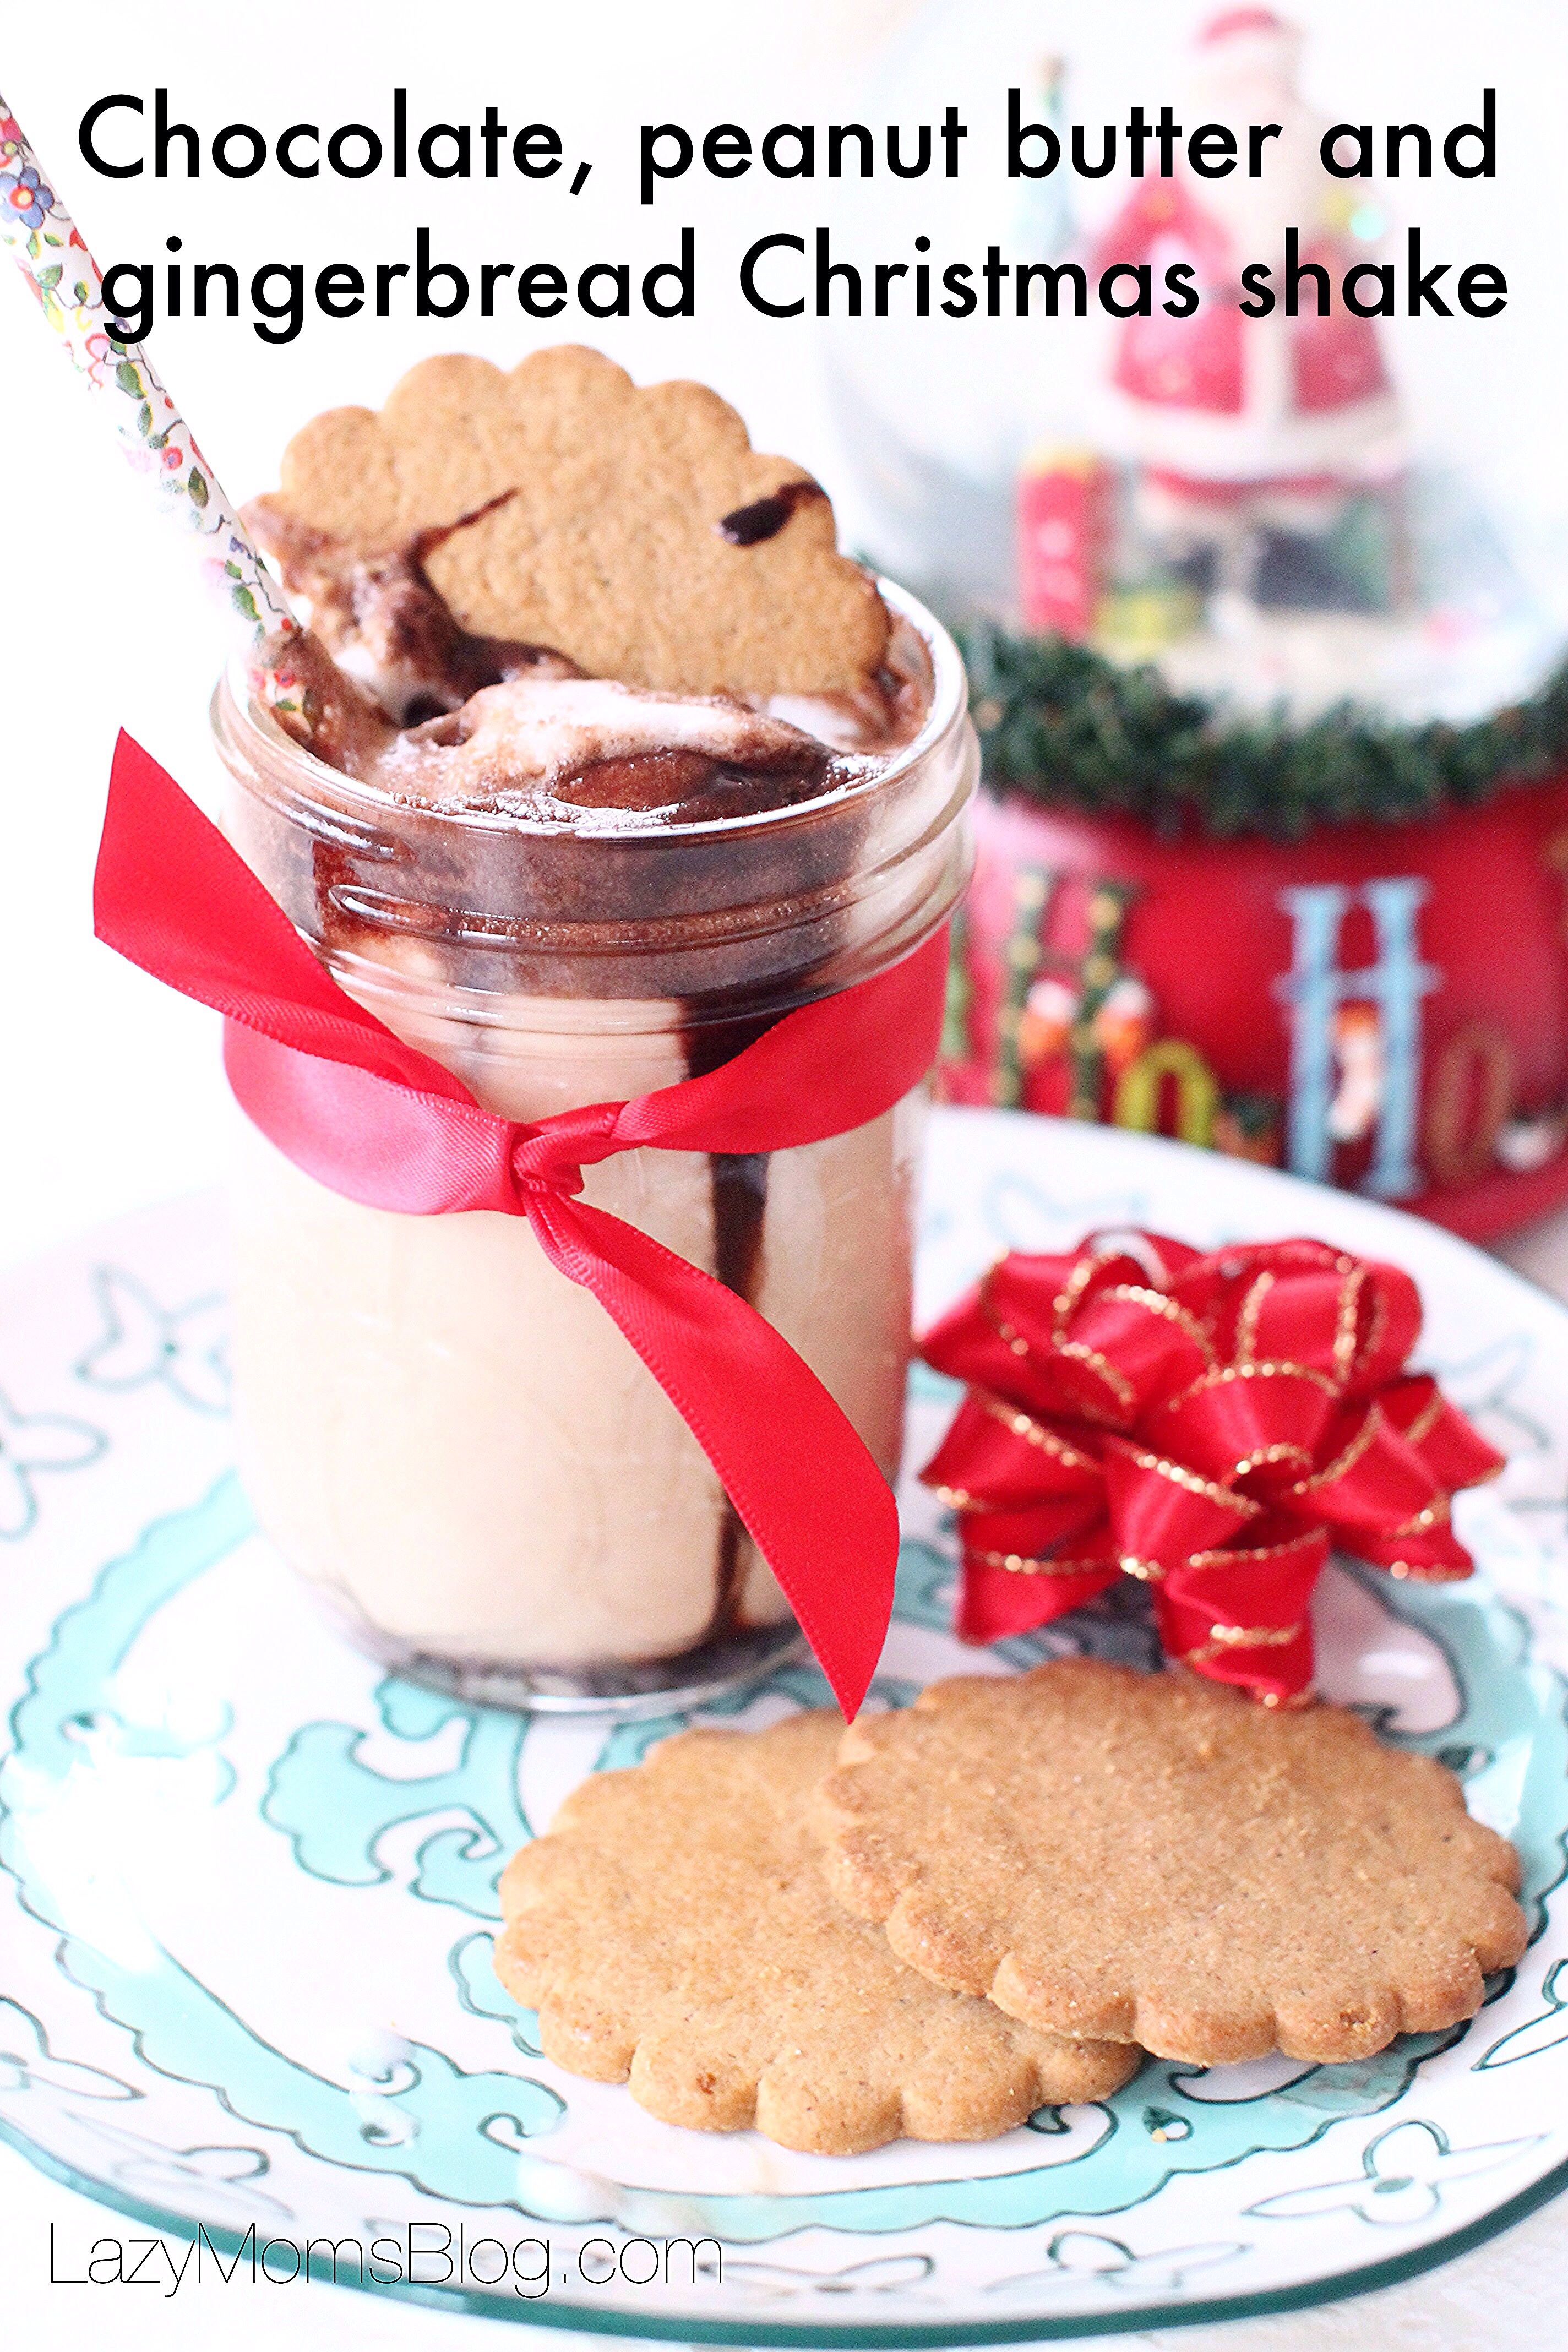 Chocolate, peanut butter and gingerbread Christmas shake: my new favourite festive treat!